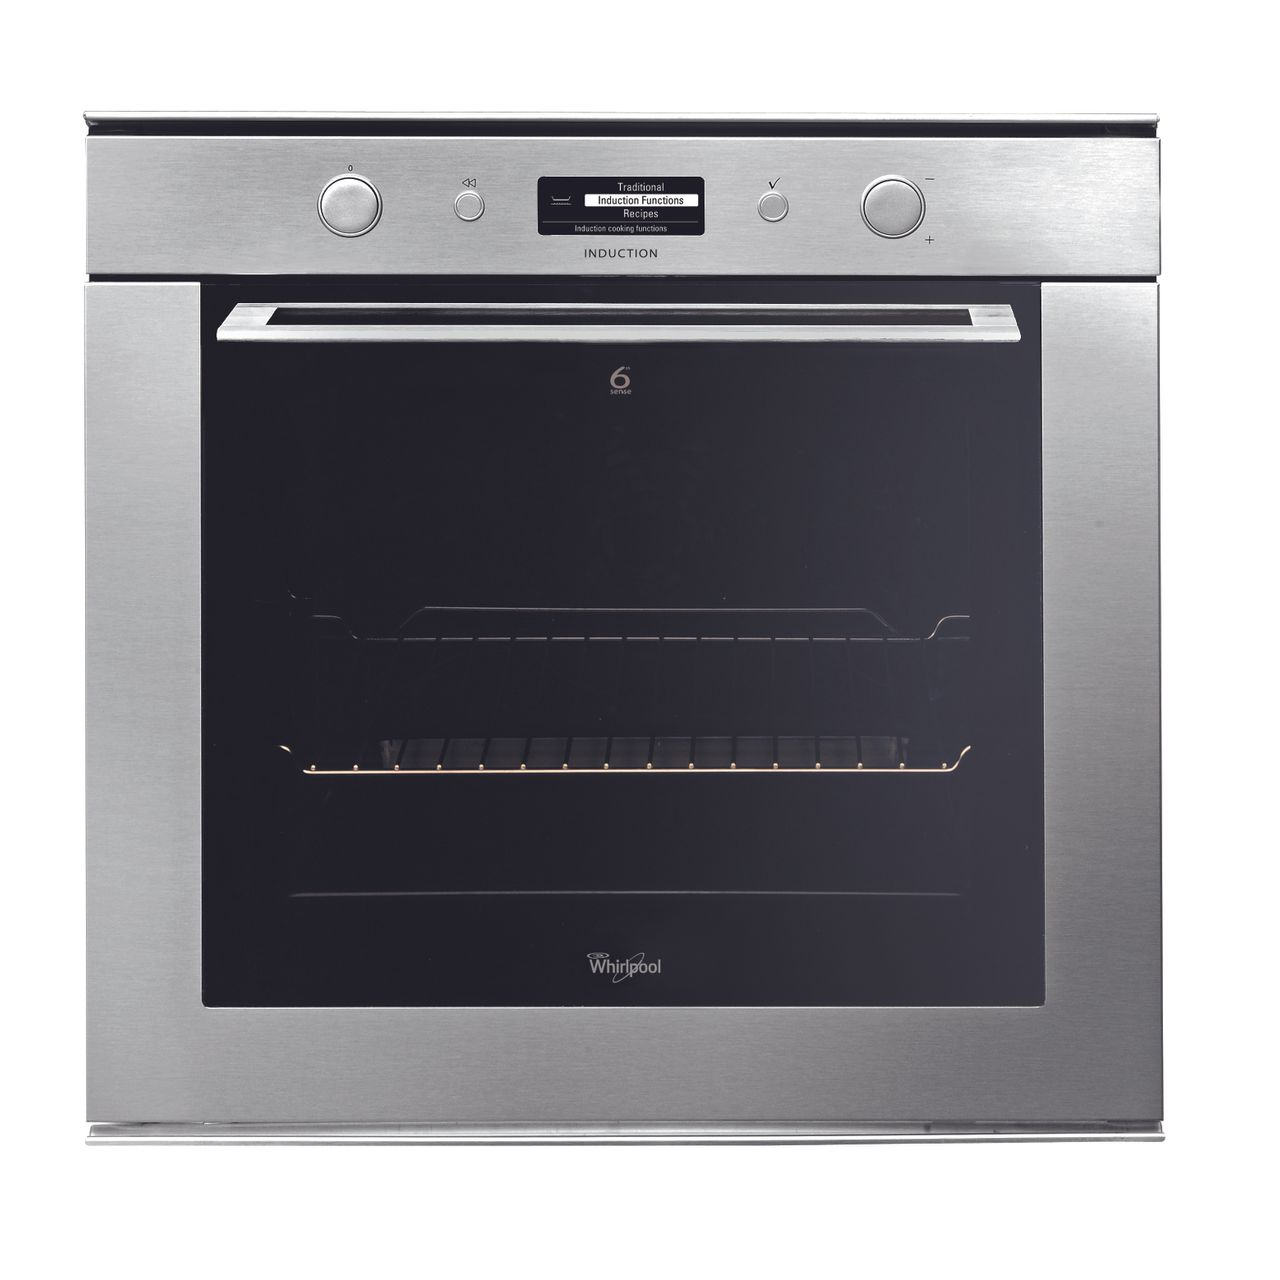 Whirlpool AKZM8790/IXL Built In Electric Single Oven - Stainless Steel Look